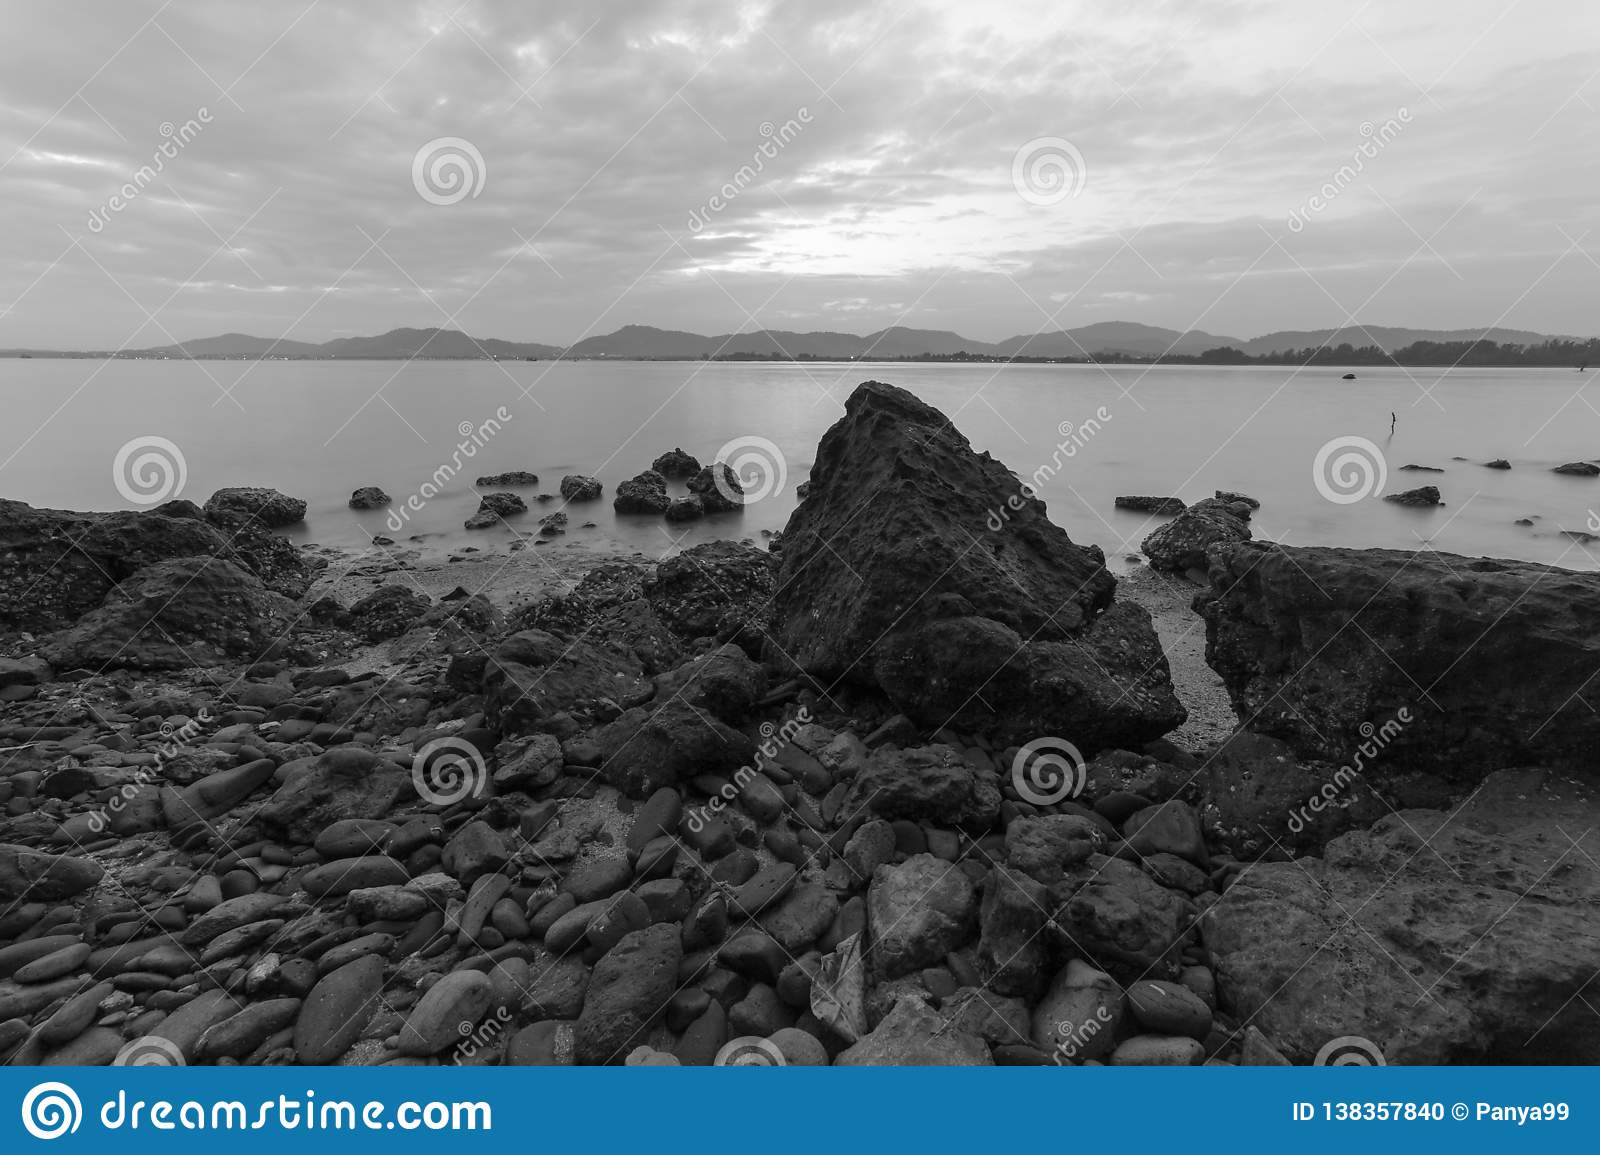 Long exposure of seascape scenery with rocks in black and white,beautiful image can be used nature composition for background and